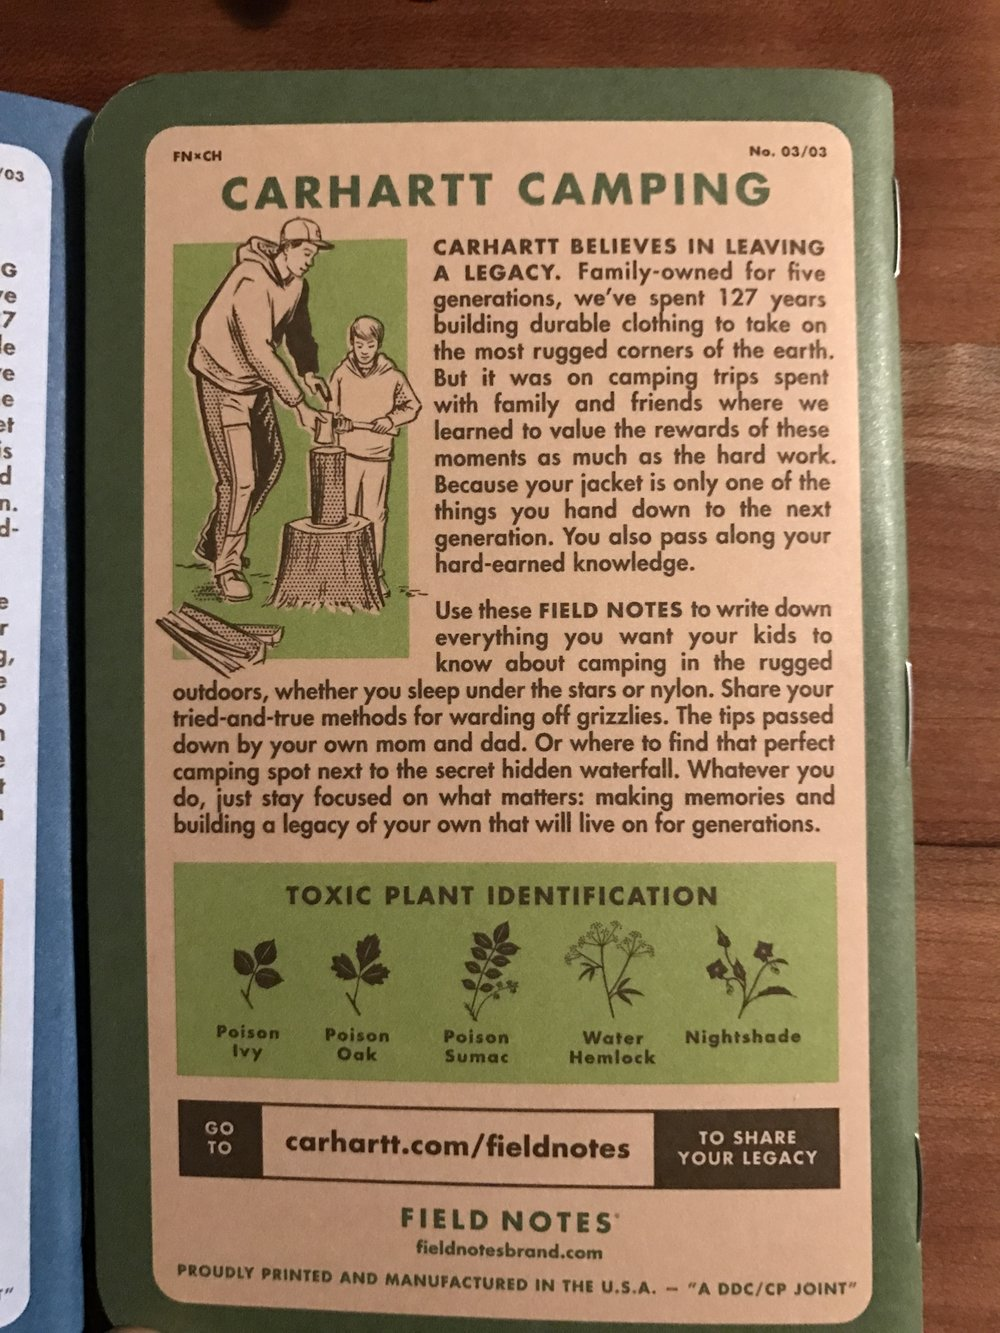 Camping info on the Green book.